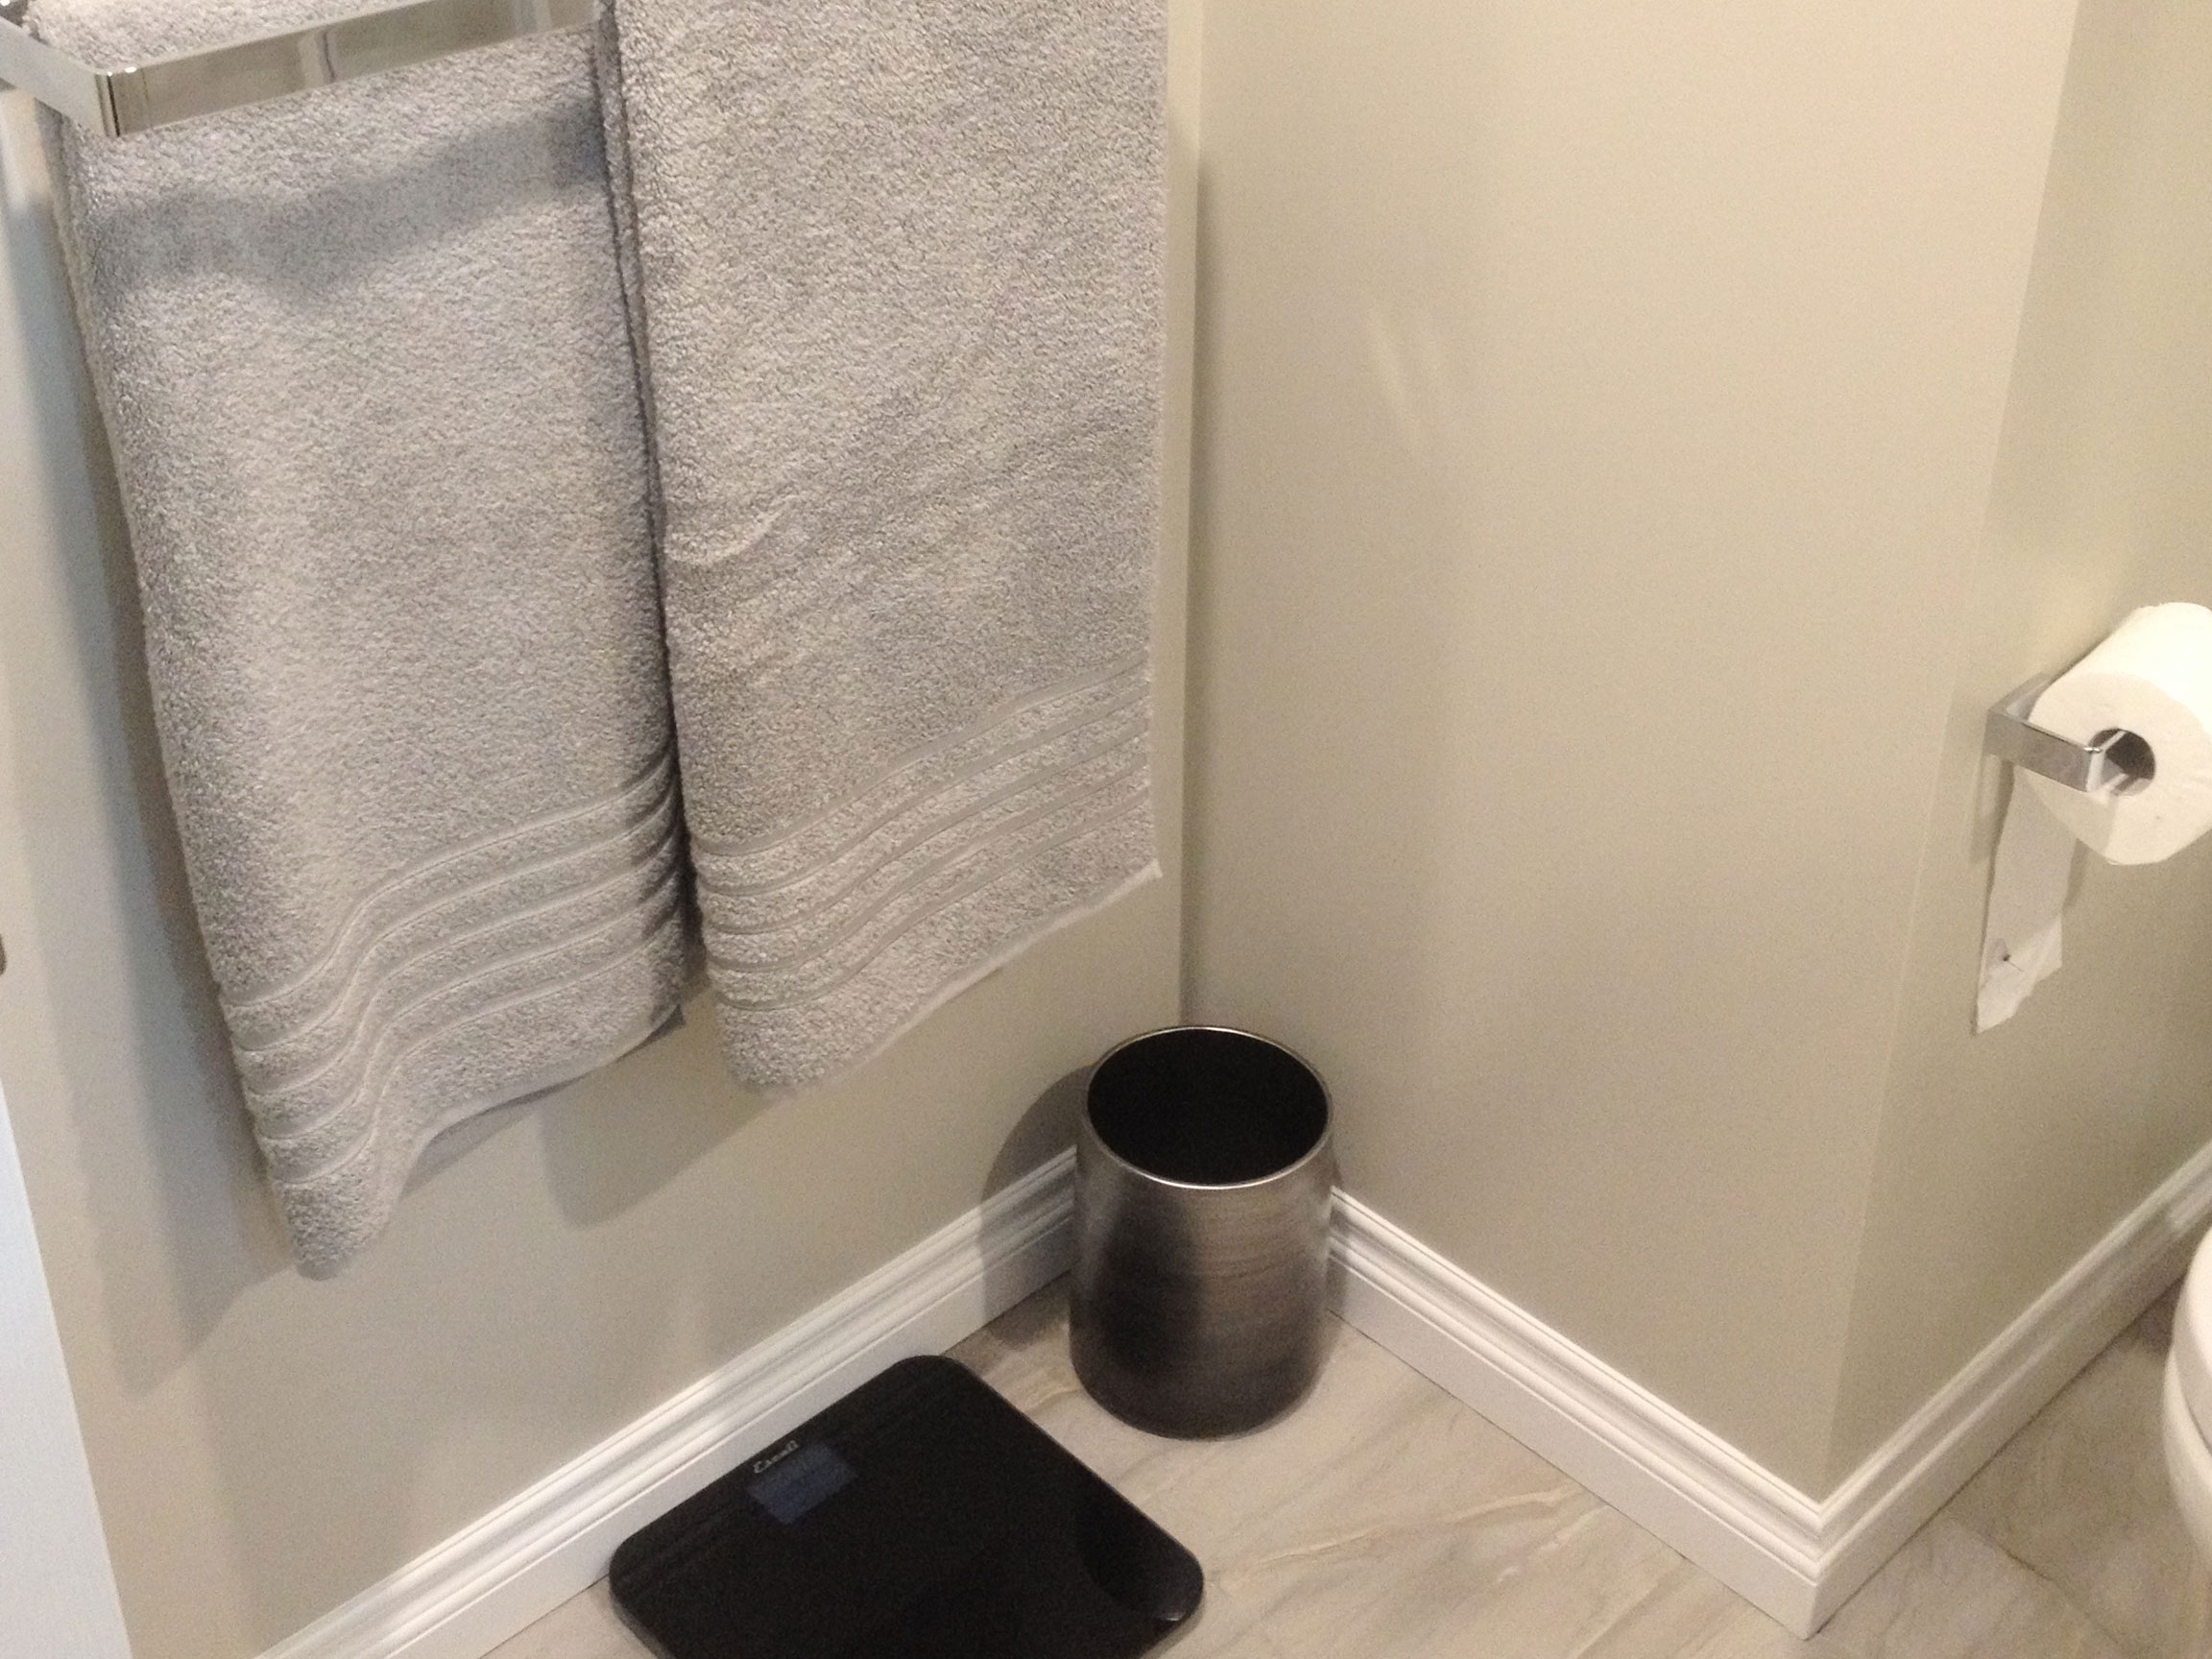 Bathroom Walls and Tile After